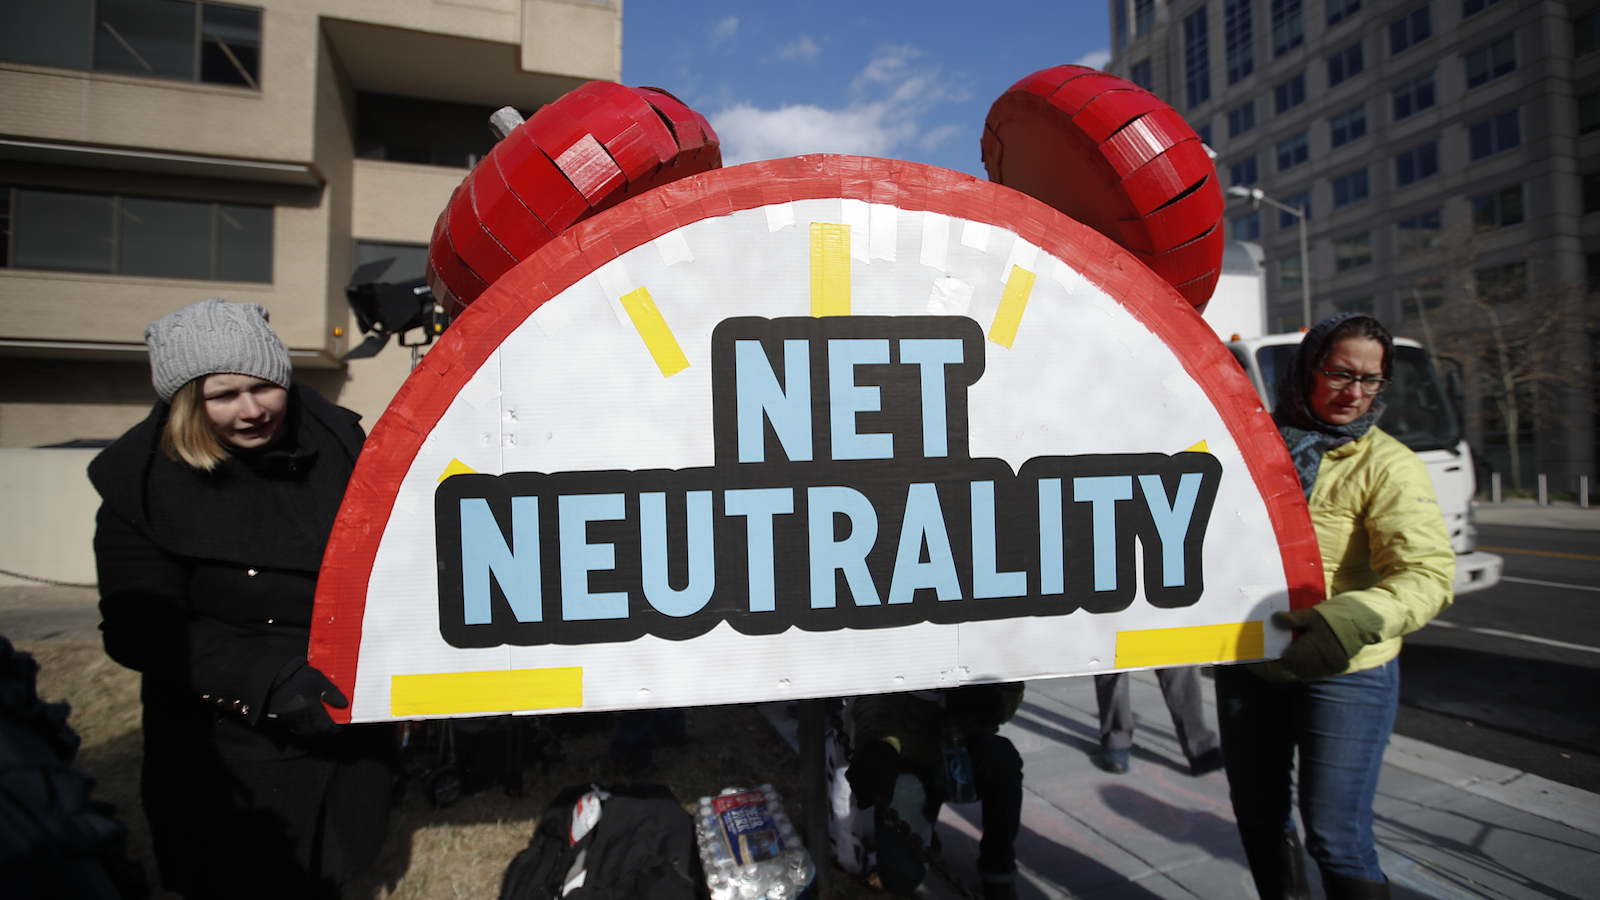 Federal Net Neutrality Protections Have Officially Been Repealed